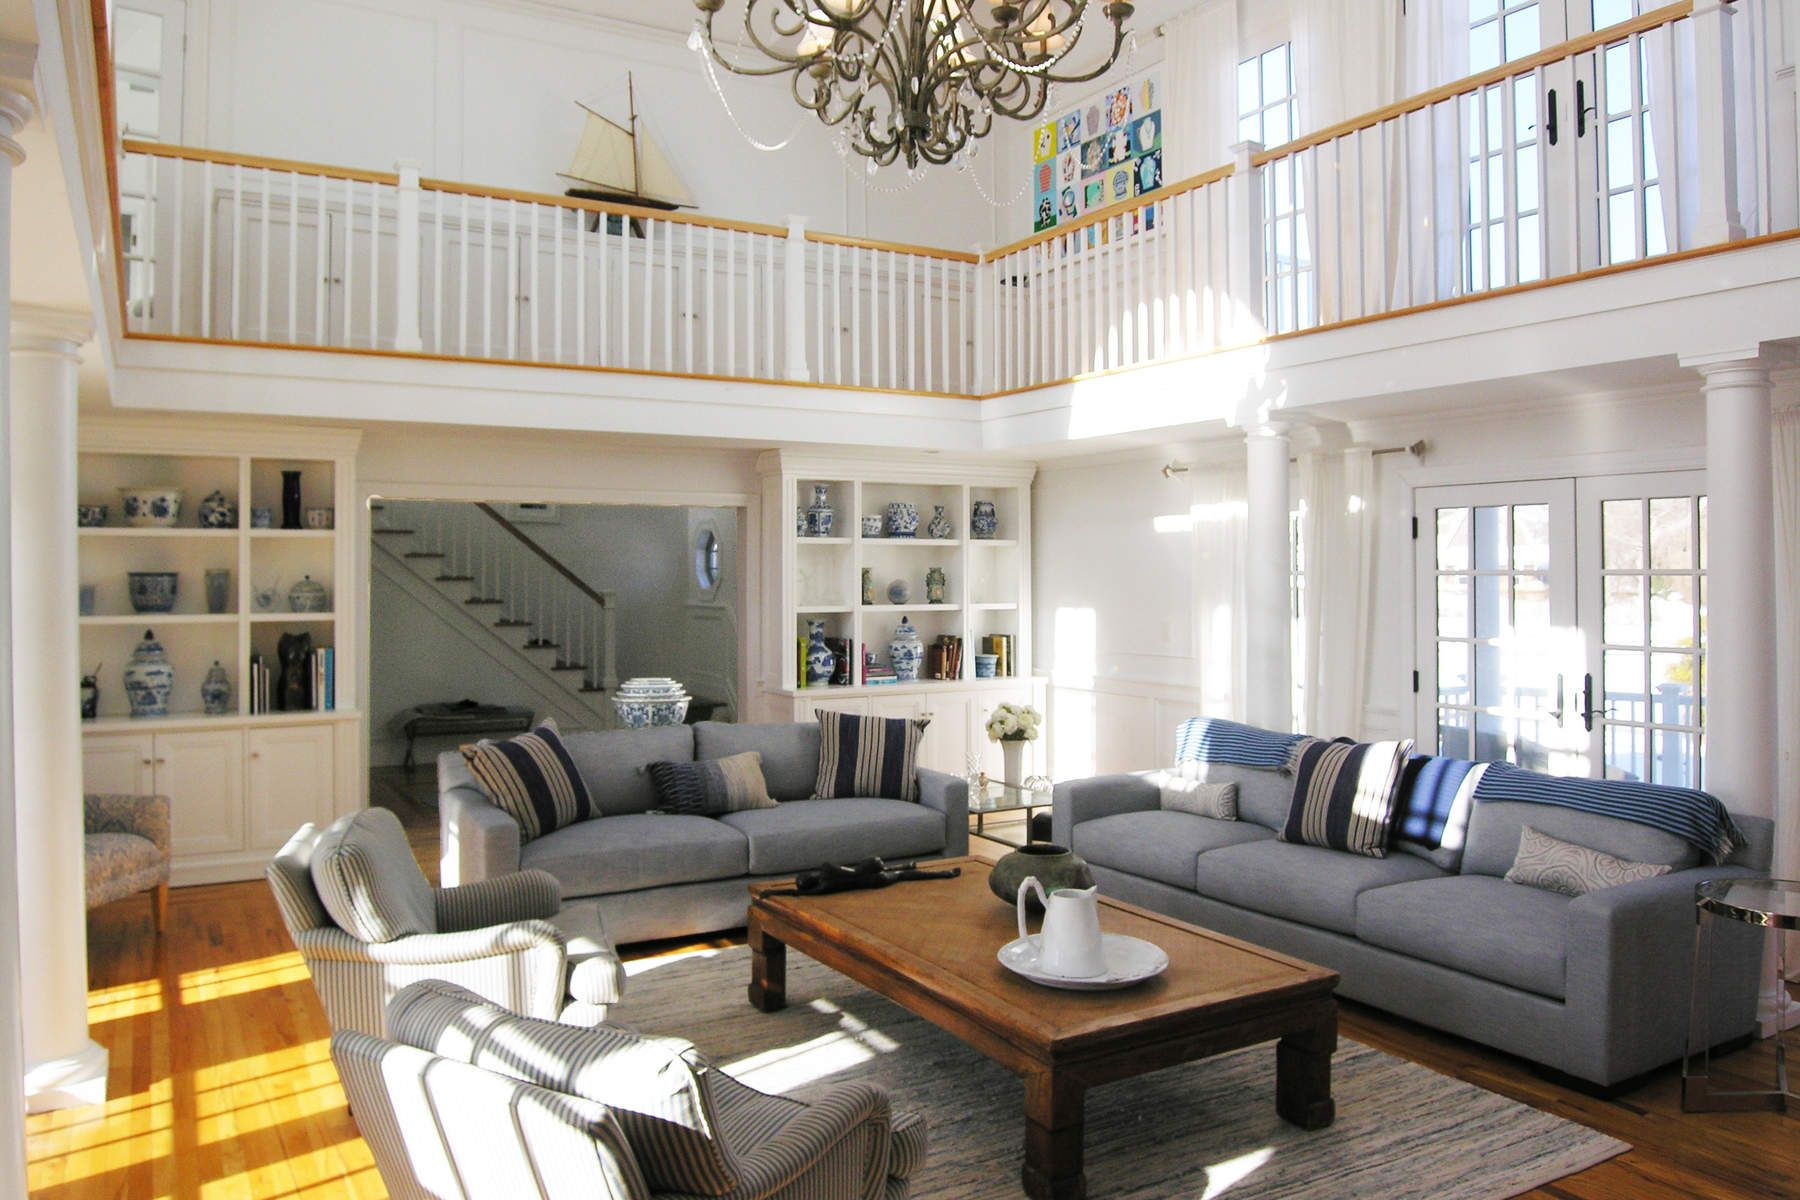 Single Family Home for Rent at Sagaponack South Sagaponack, New York 11962 United States